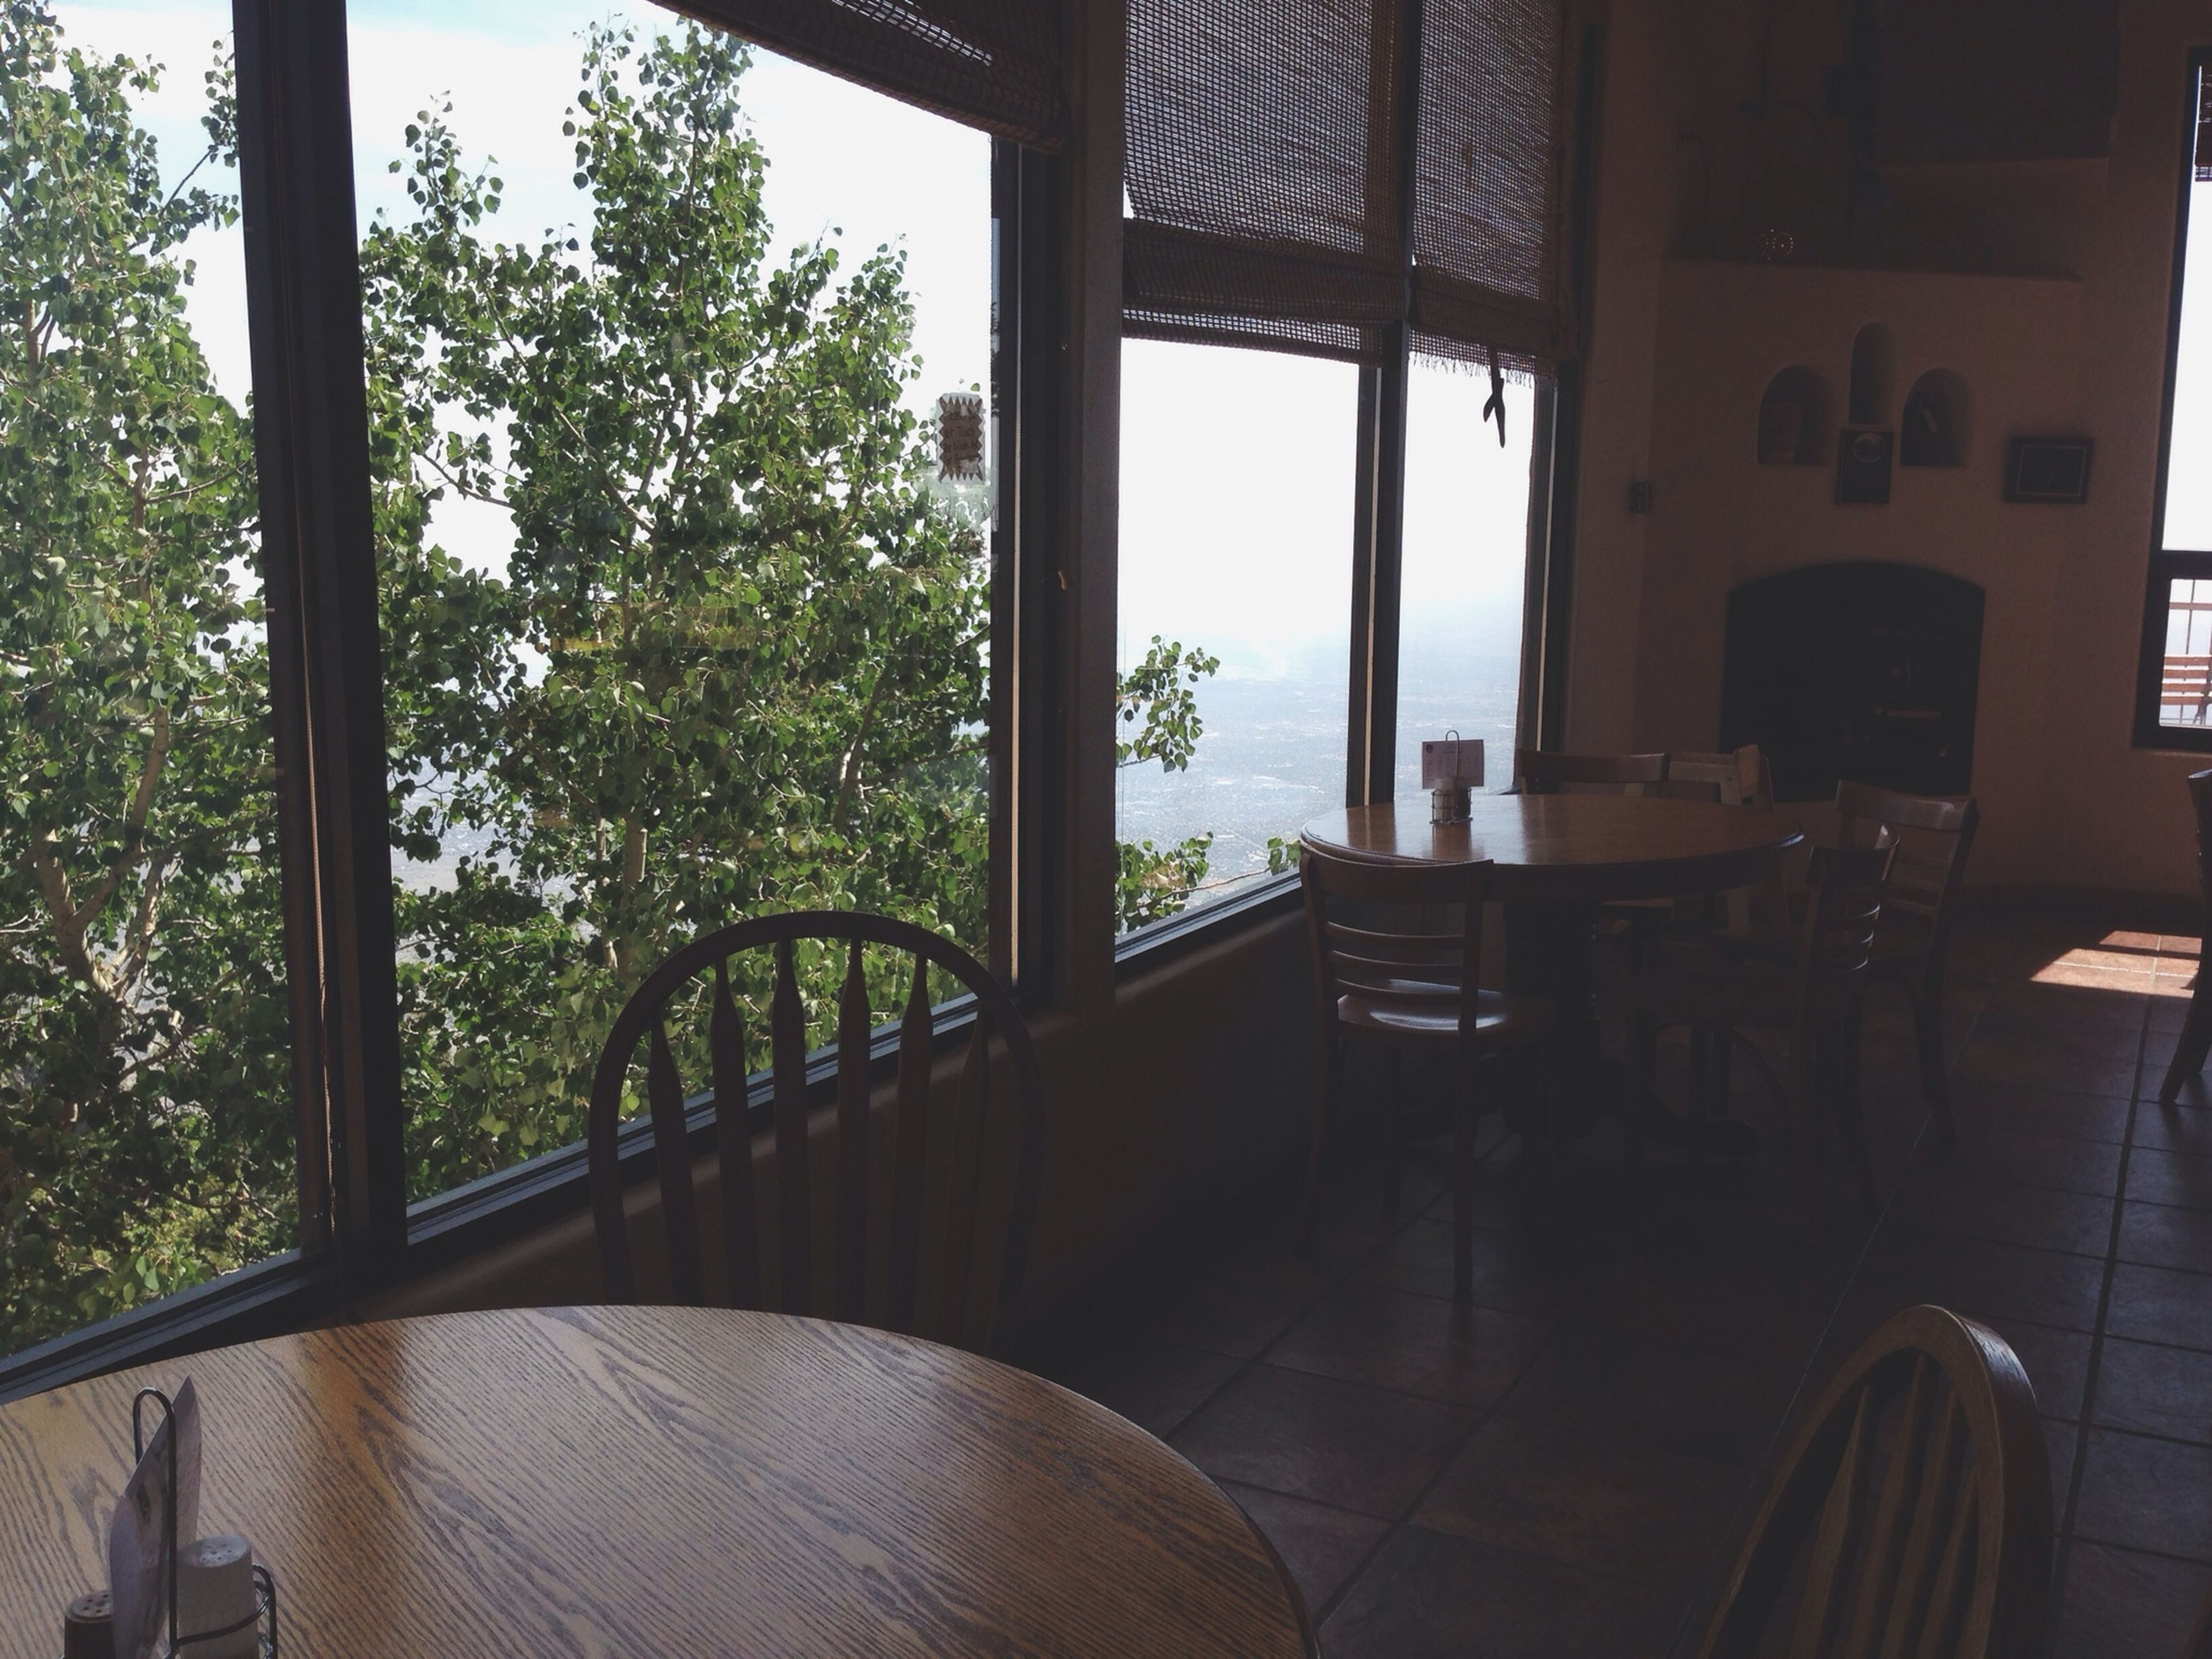 indoors, chair, window, table, absence, empty, tree, home interior, built structure, sunlight, glass - material, architecture, potted plant, seat, transparent, house, day, restaurant, no people, furniture